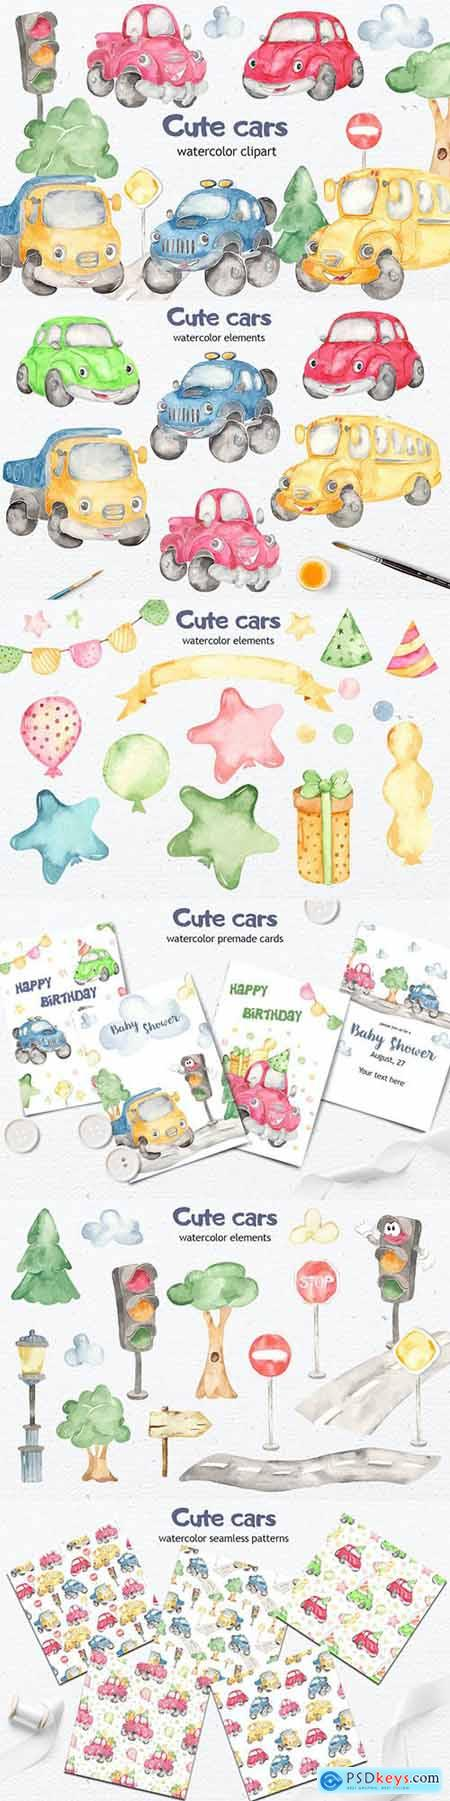 Watercolor cute Cars Clipart, cards, patterns